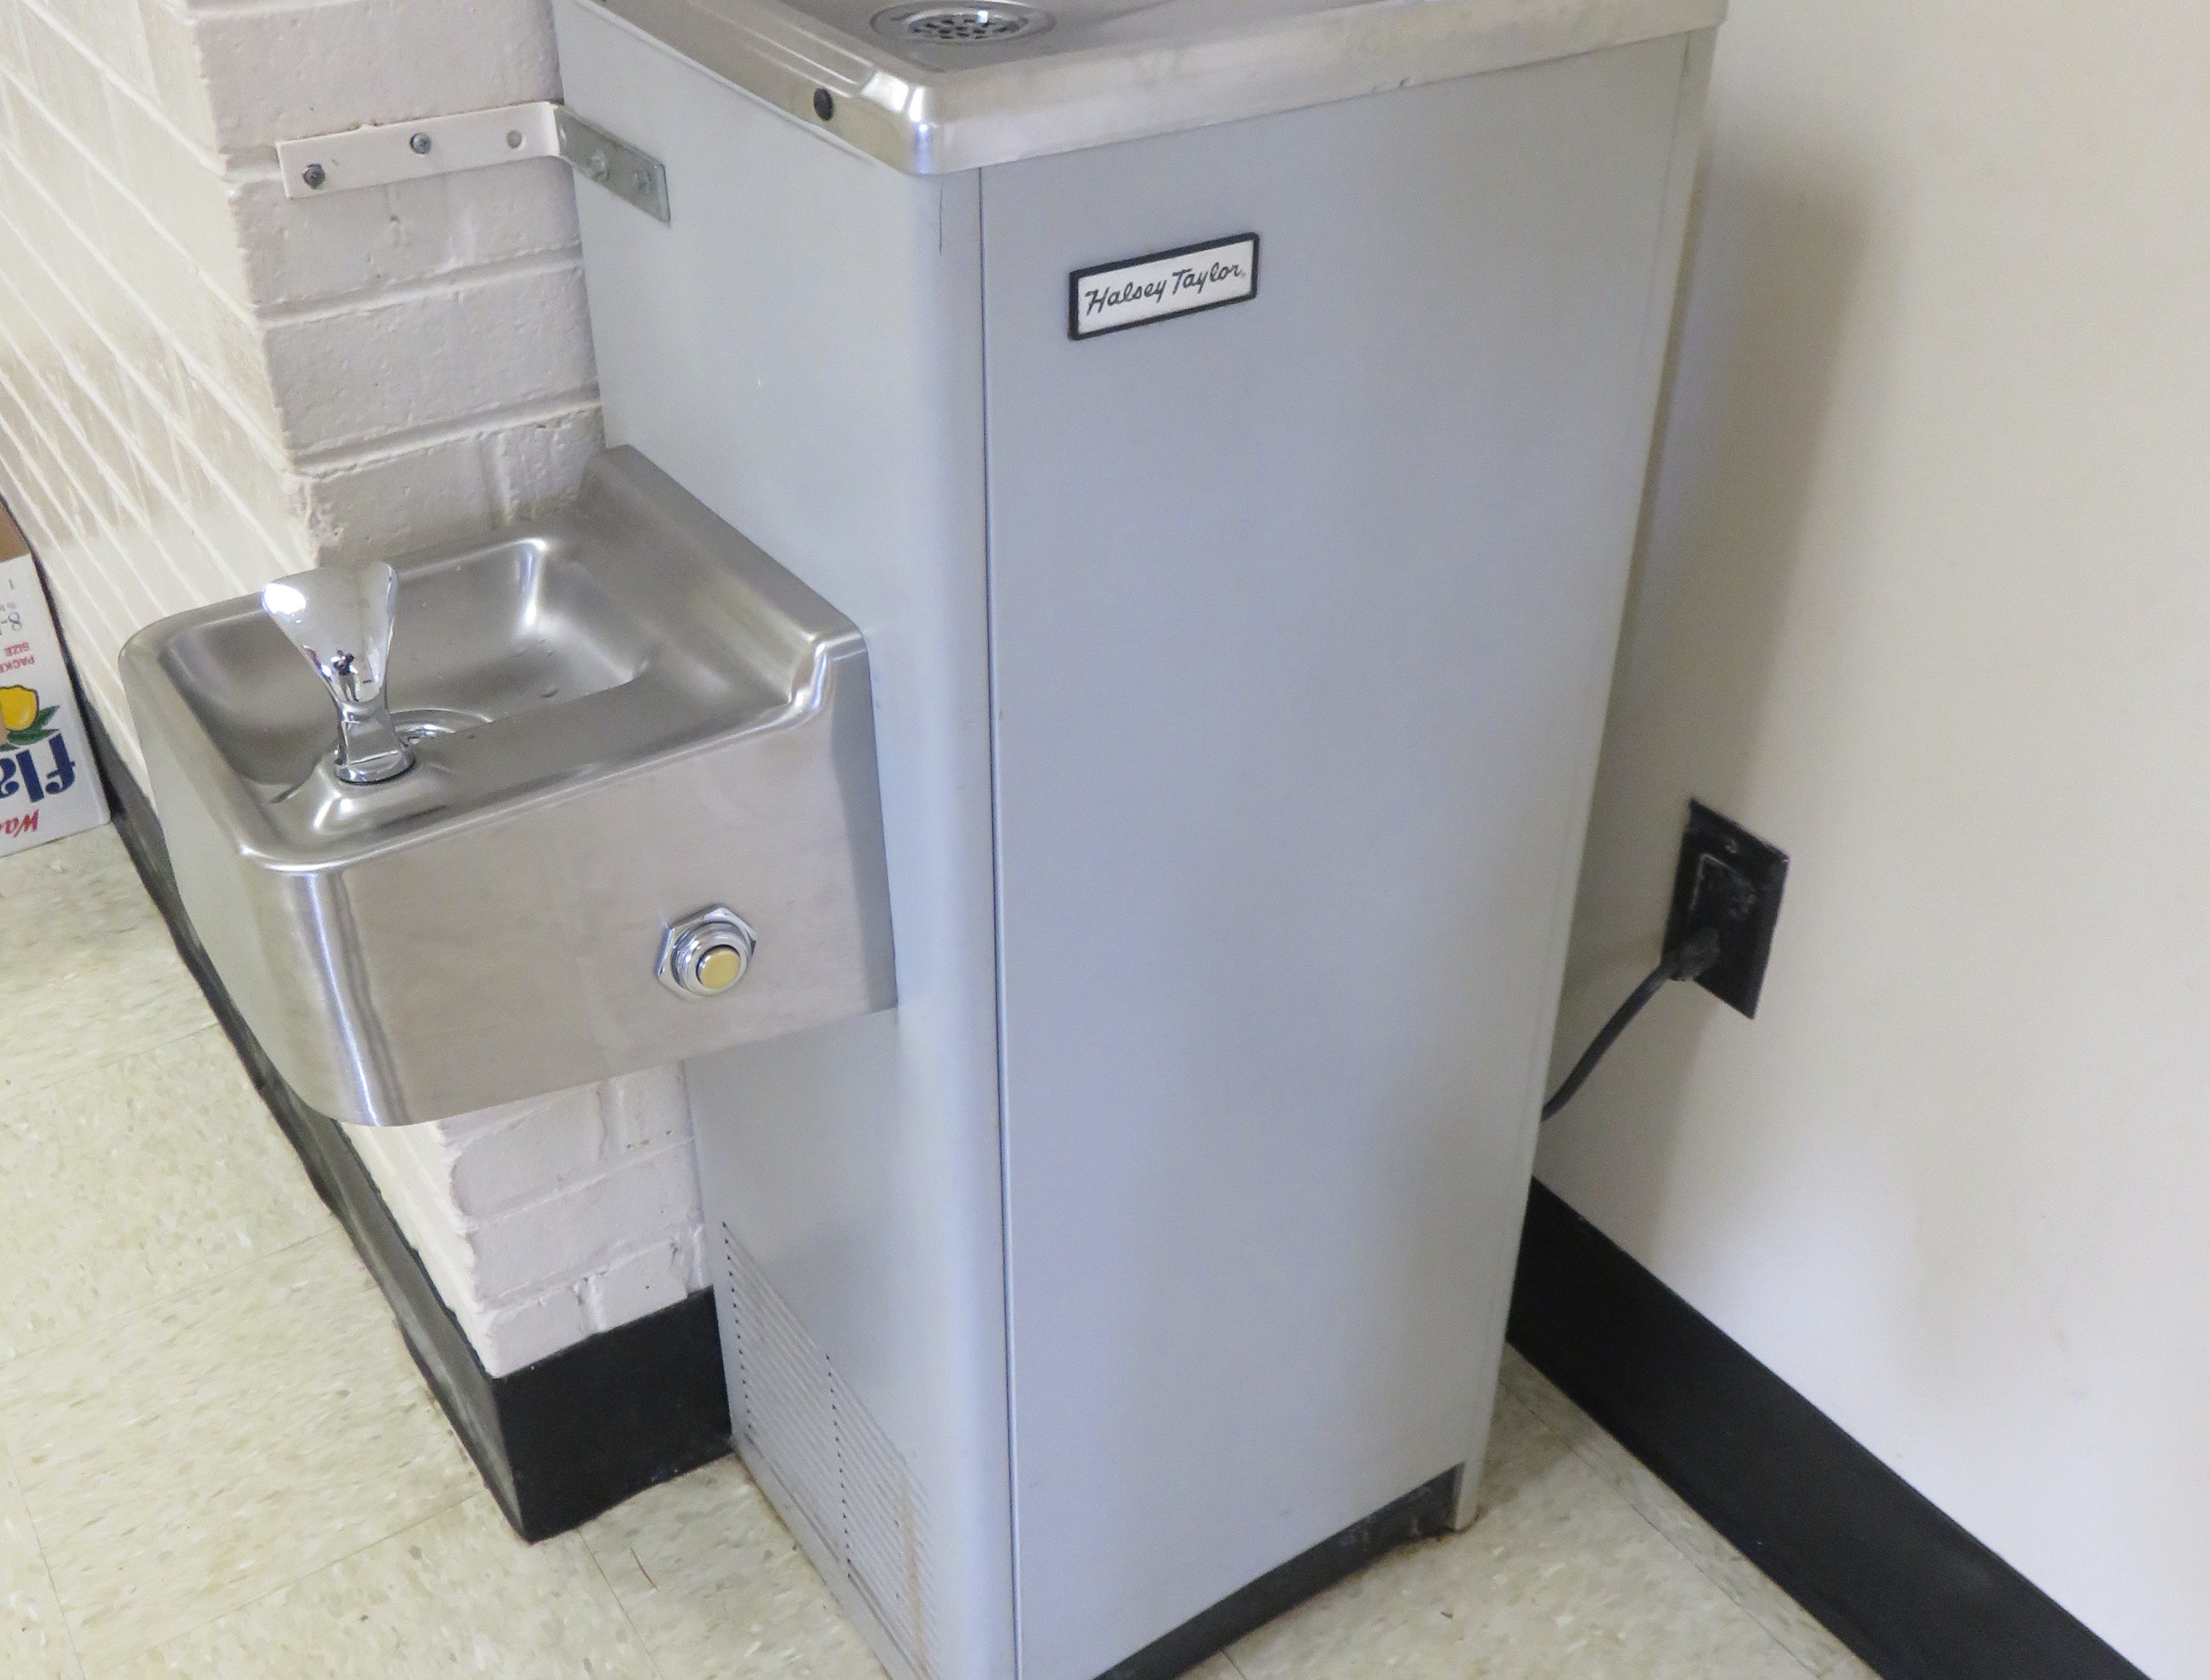 A mid-century Halsey-Taylor water fountain inside the school.